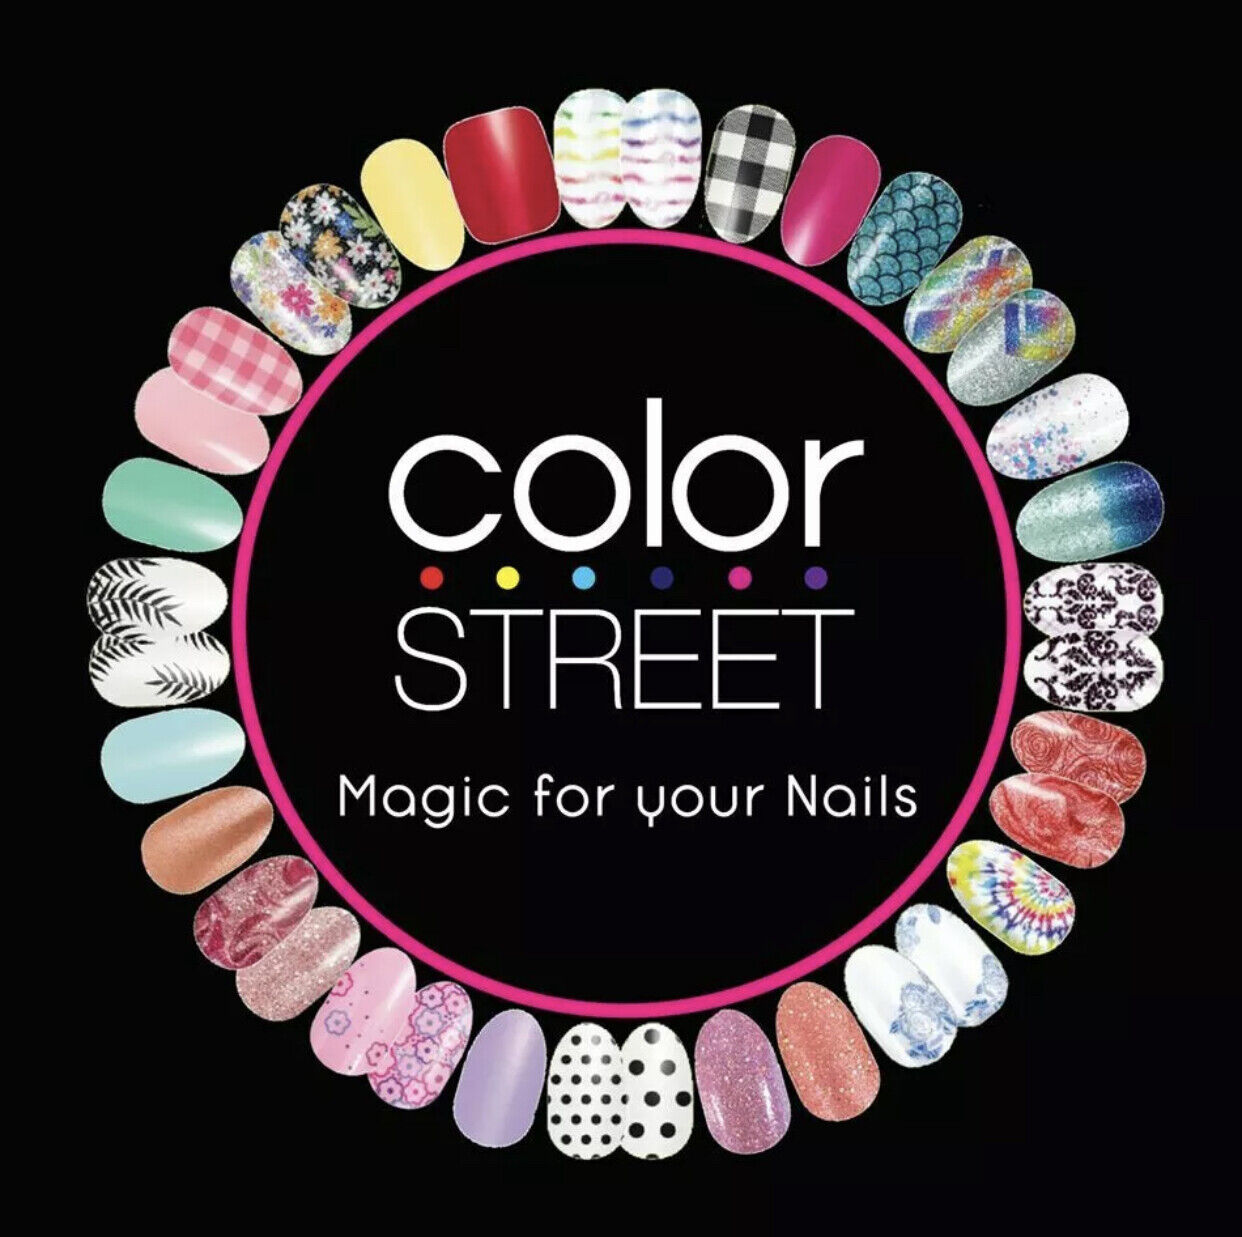 Color Street 100% Nail Polish Strips Spring/Summer 2020 & Retired -FAST SHIPPING